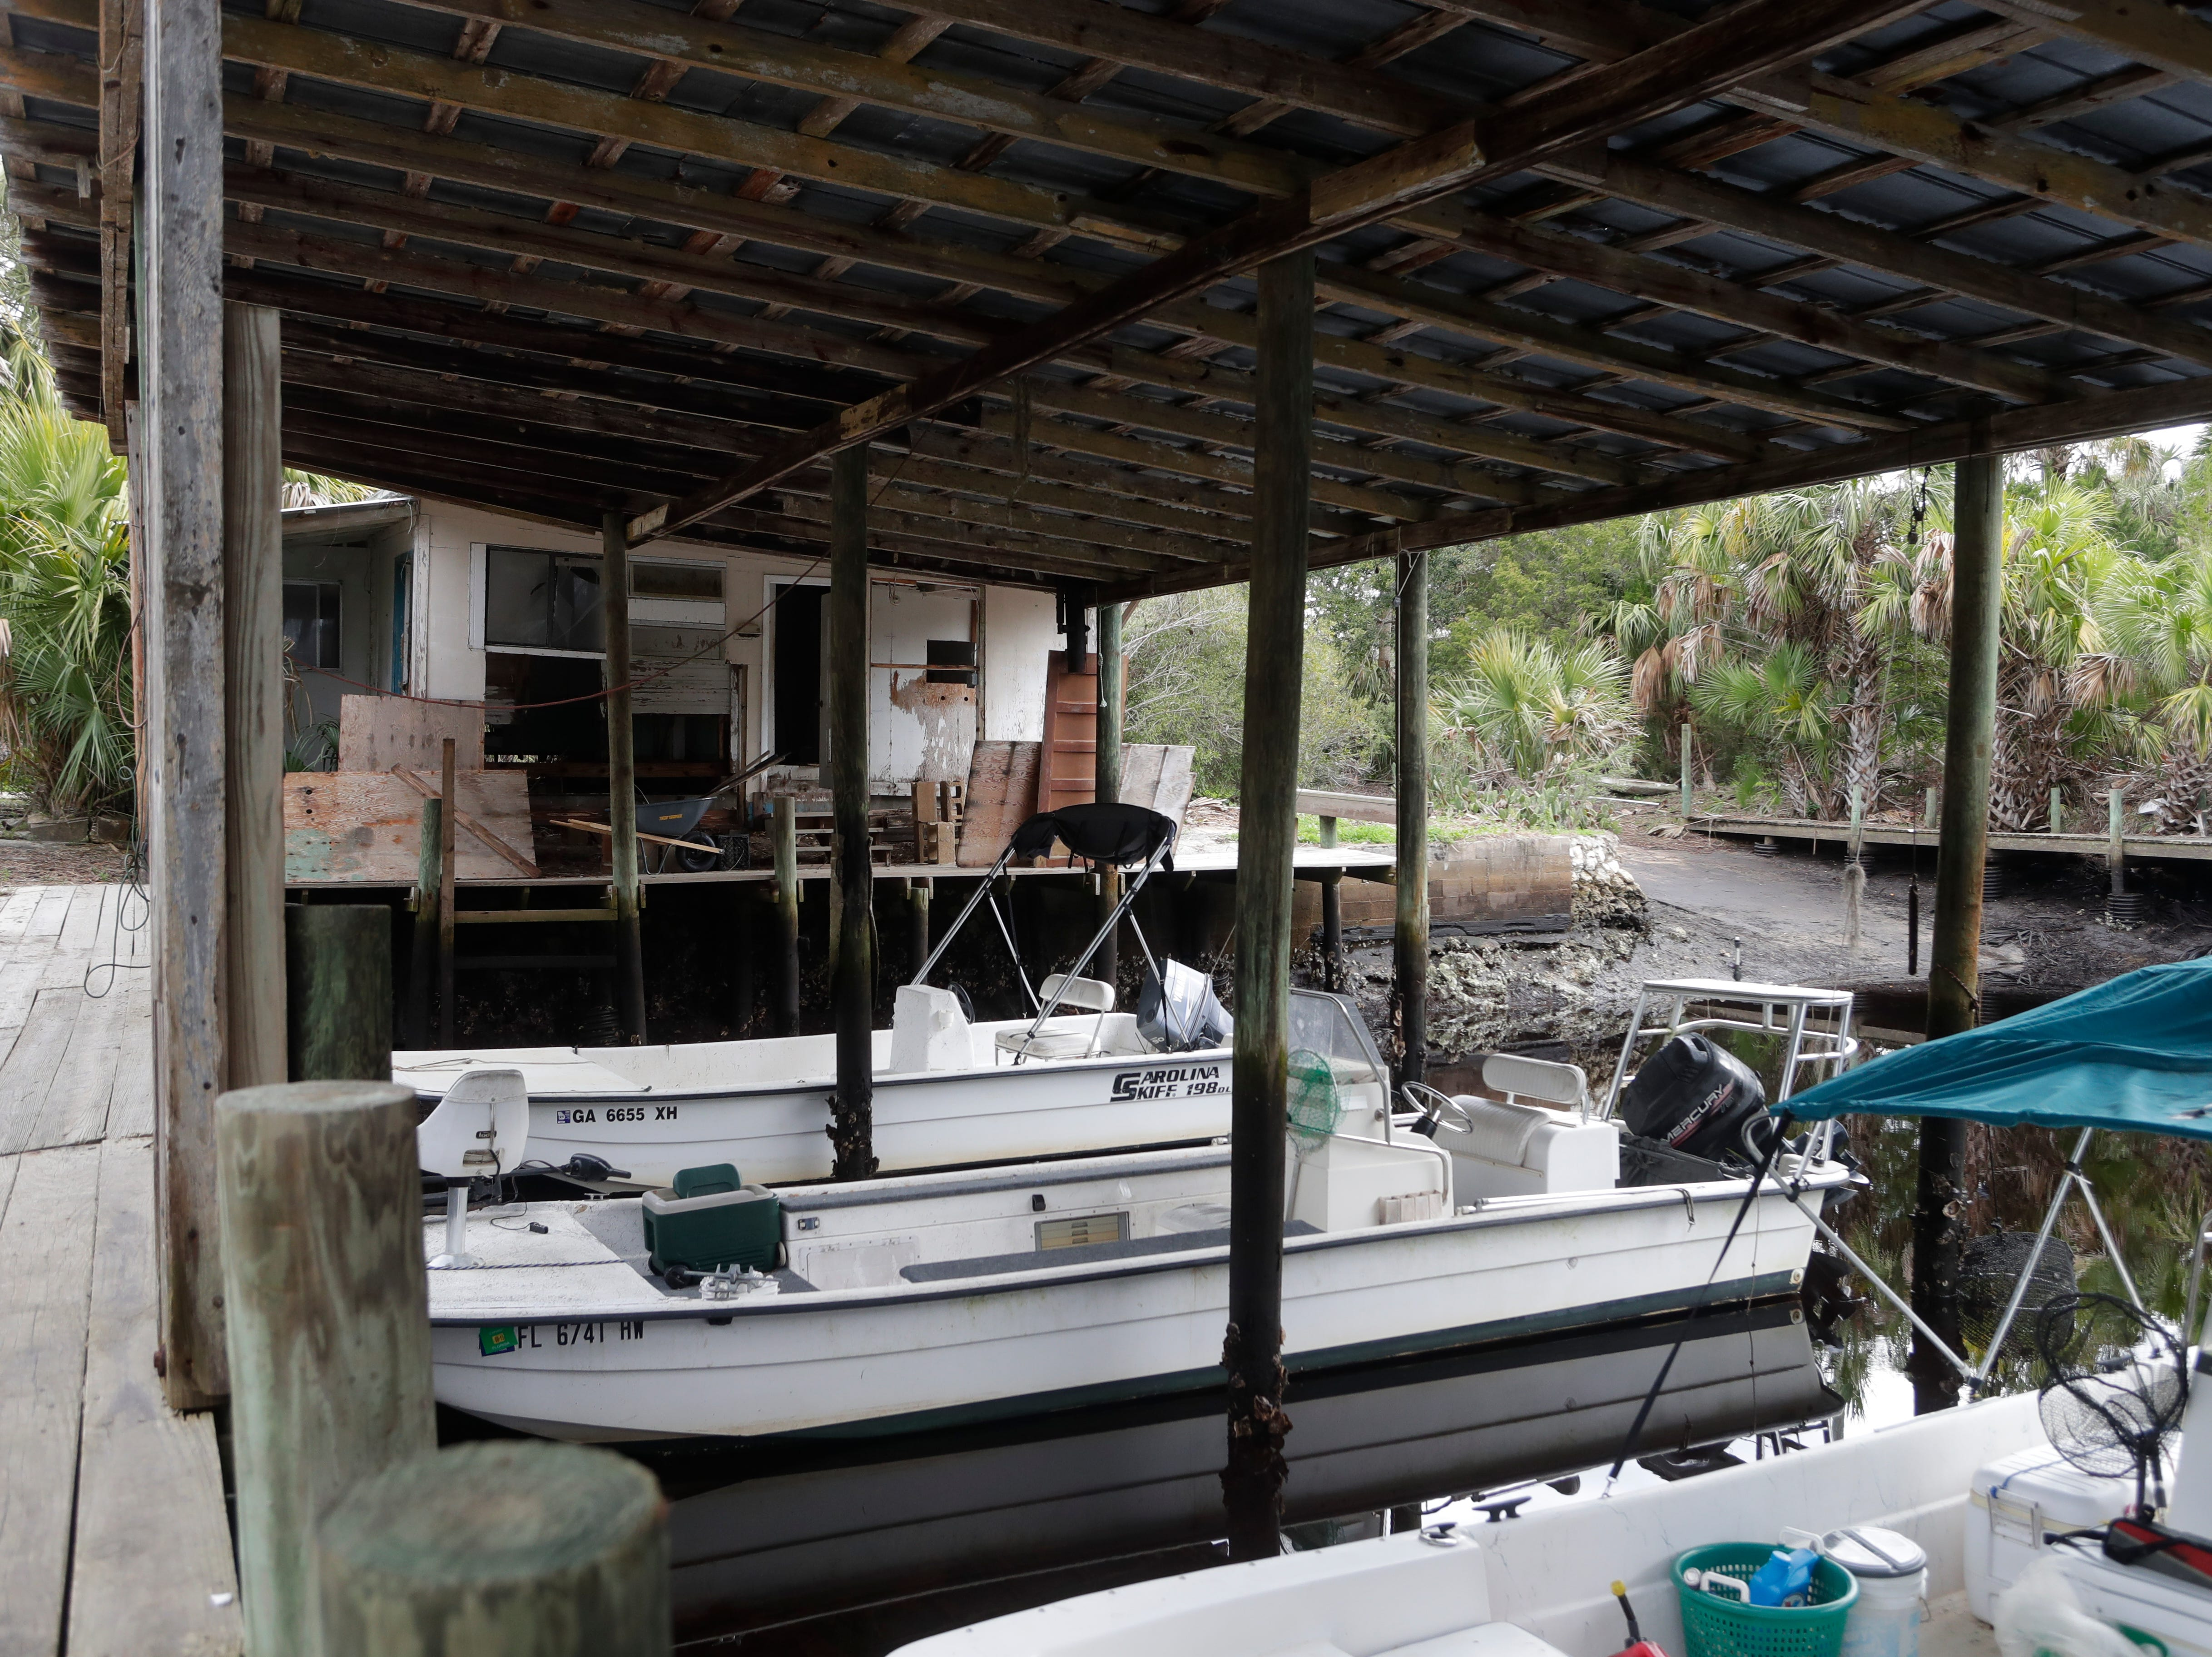 Boats float at the dock of the Spring Creek marina, Tuesday Feb. 5, 2019. The boathouse was torn apart by Hurricane Michael on Oct. 10, 2018.